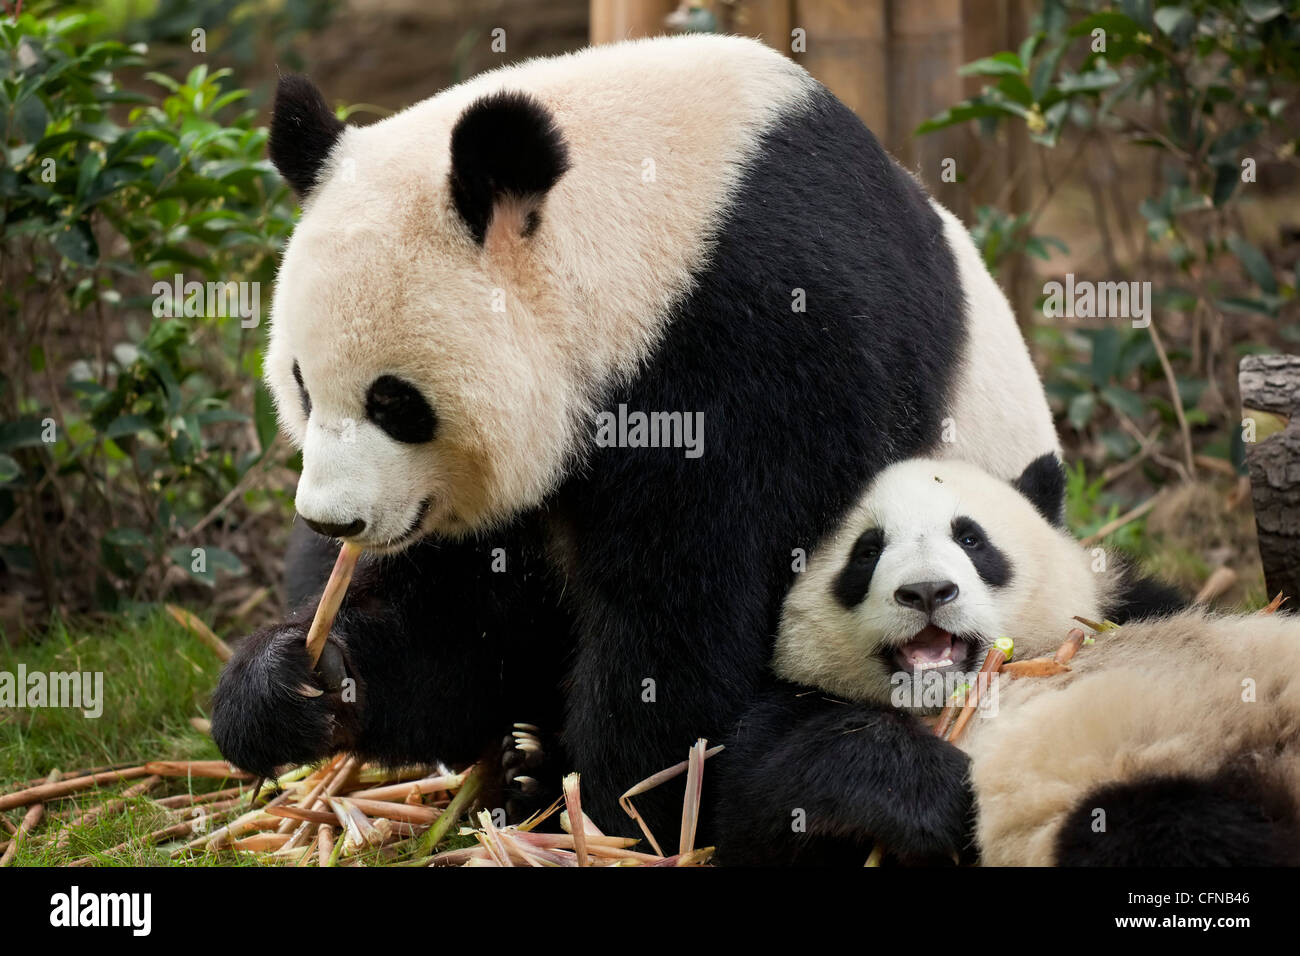 Giant Panda cubs (Ailuropoda melanoleuca) Panda Breeding and Research Centre, Chengdu, Sichuan, China, Asia - Stock Image